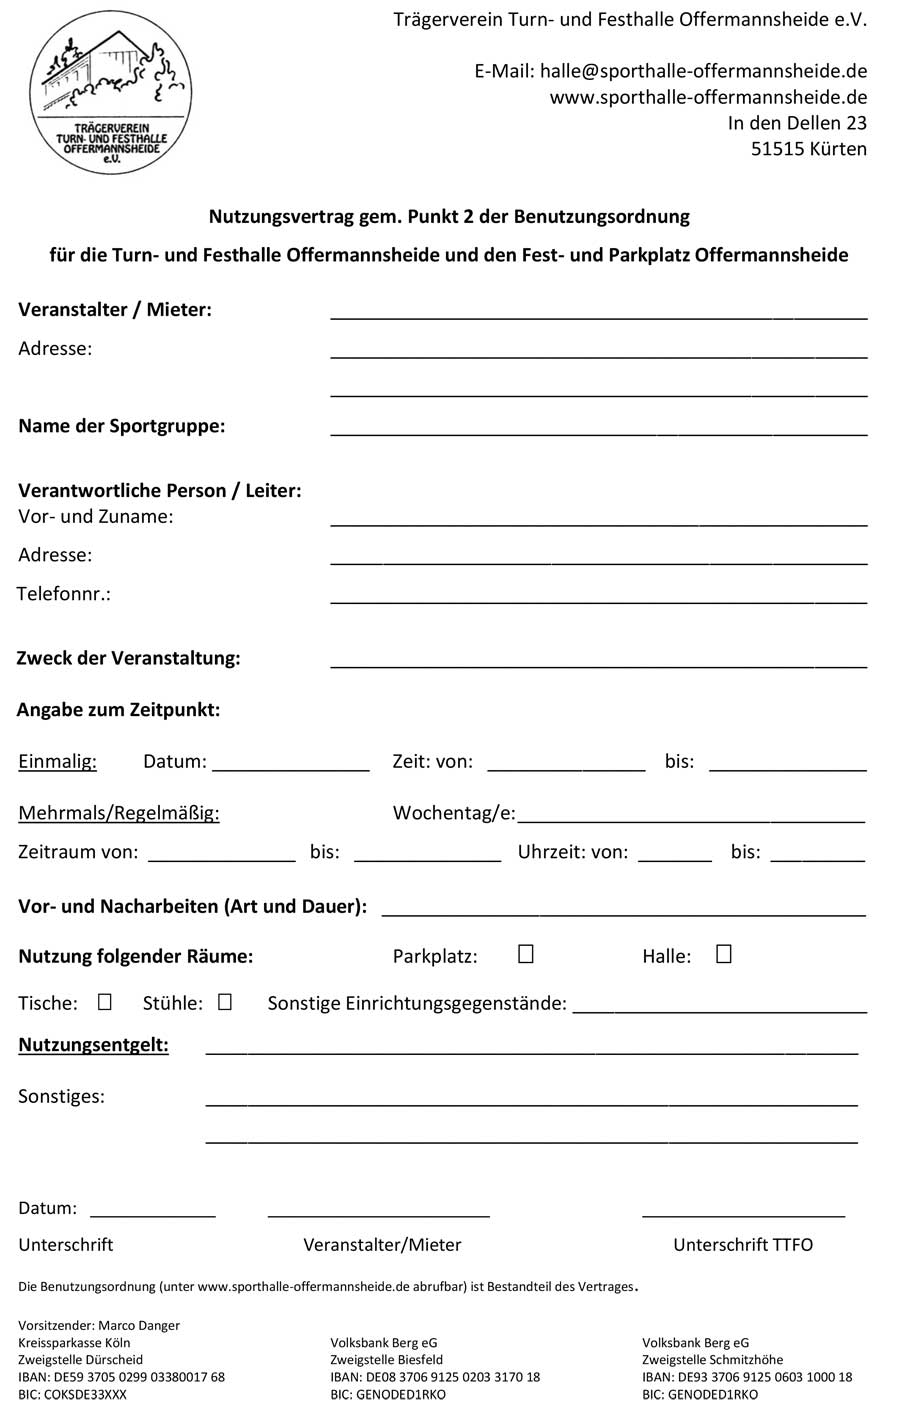 Mietvertrag der Sporthalle Offermannsheide Download PDF-Datei